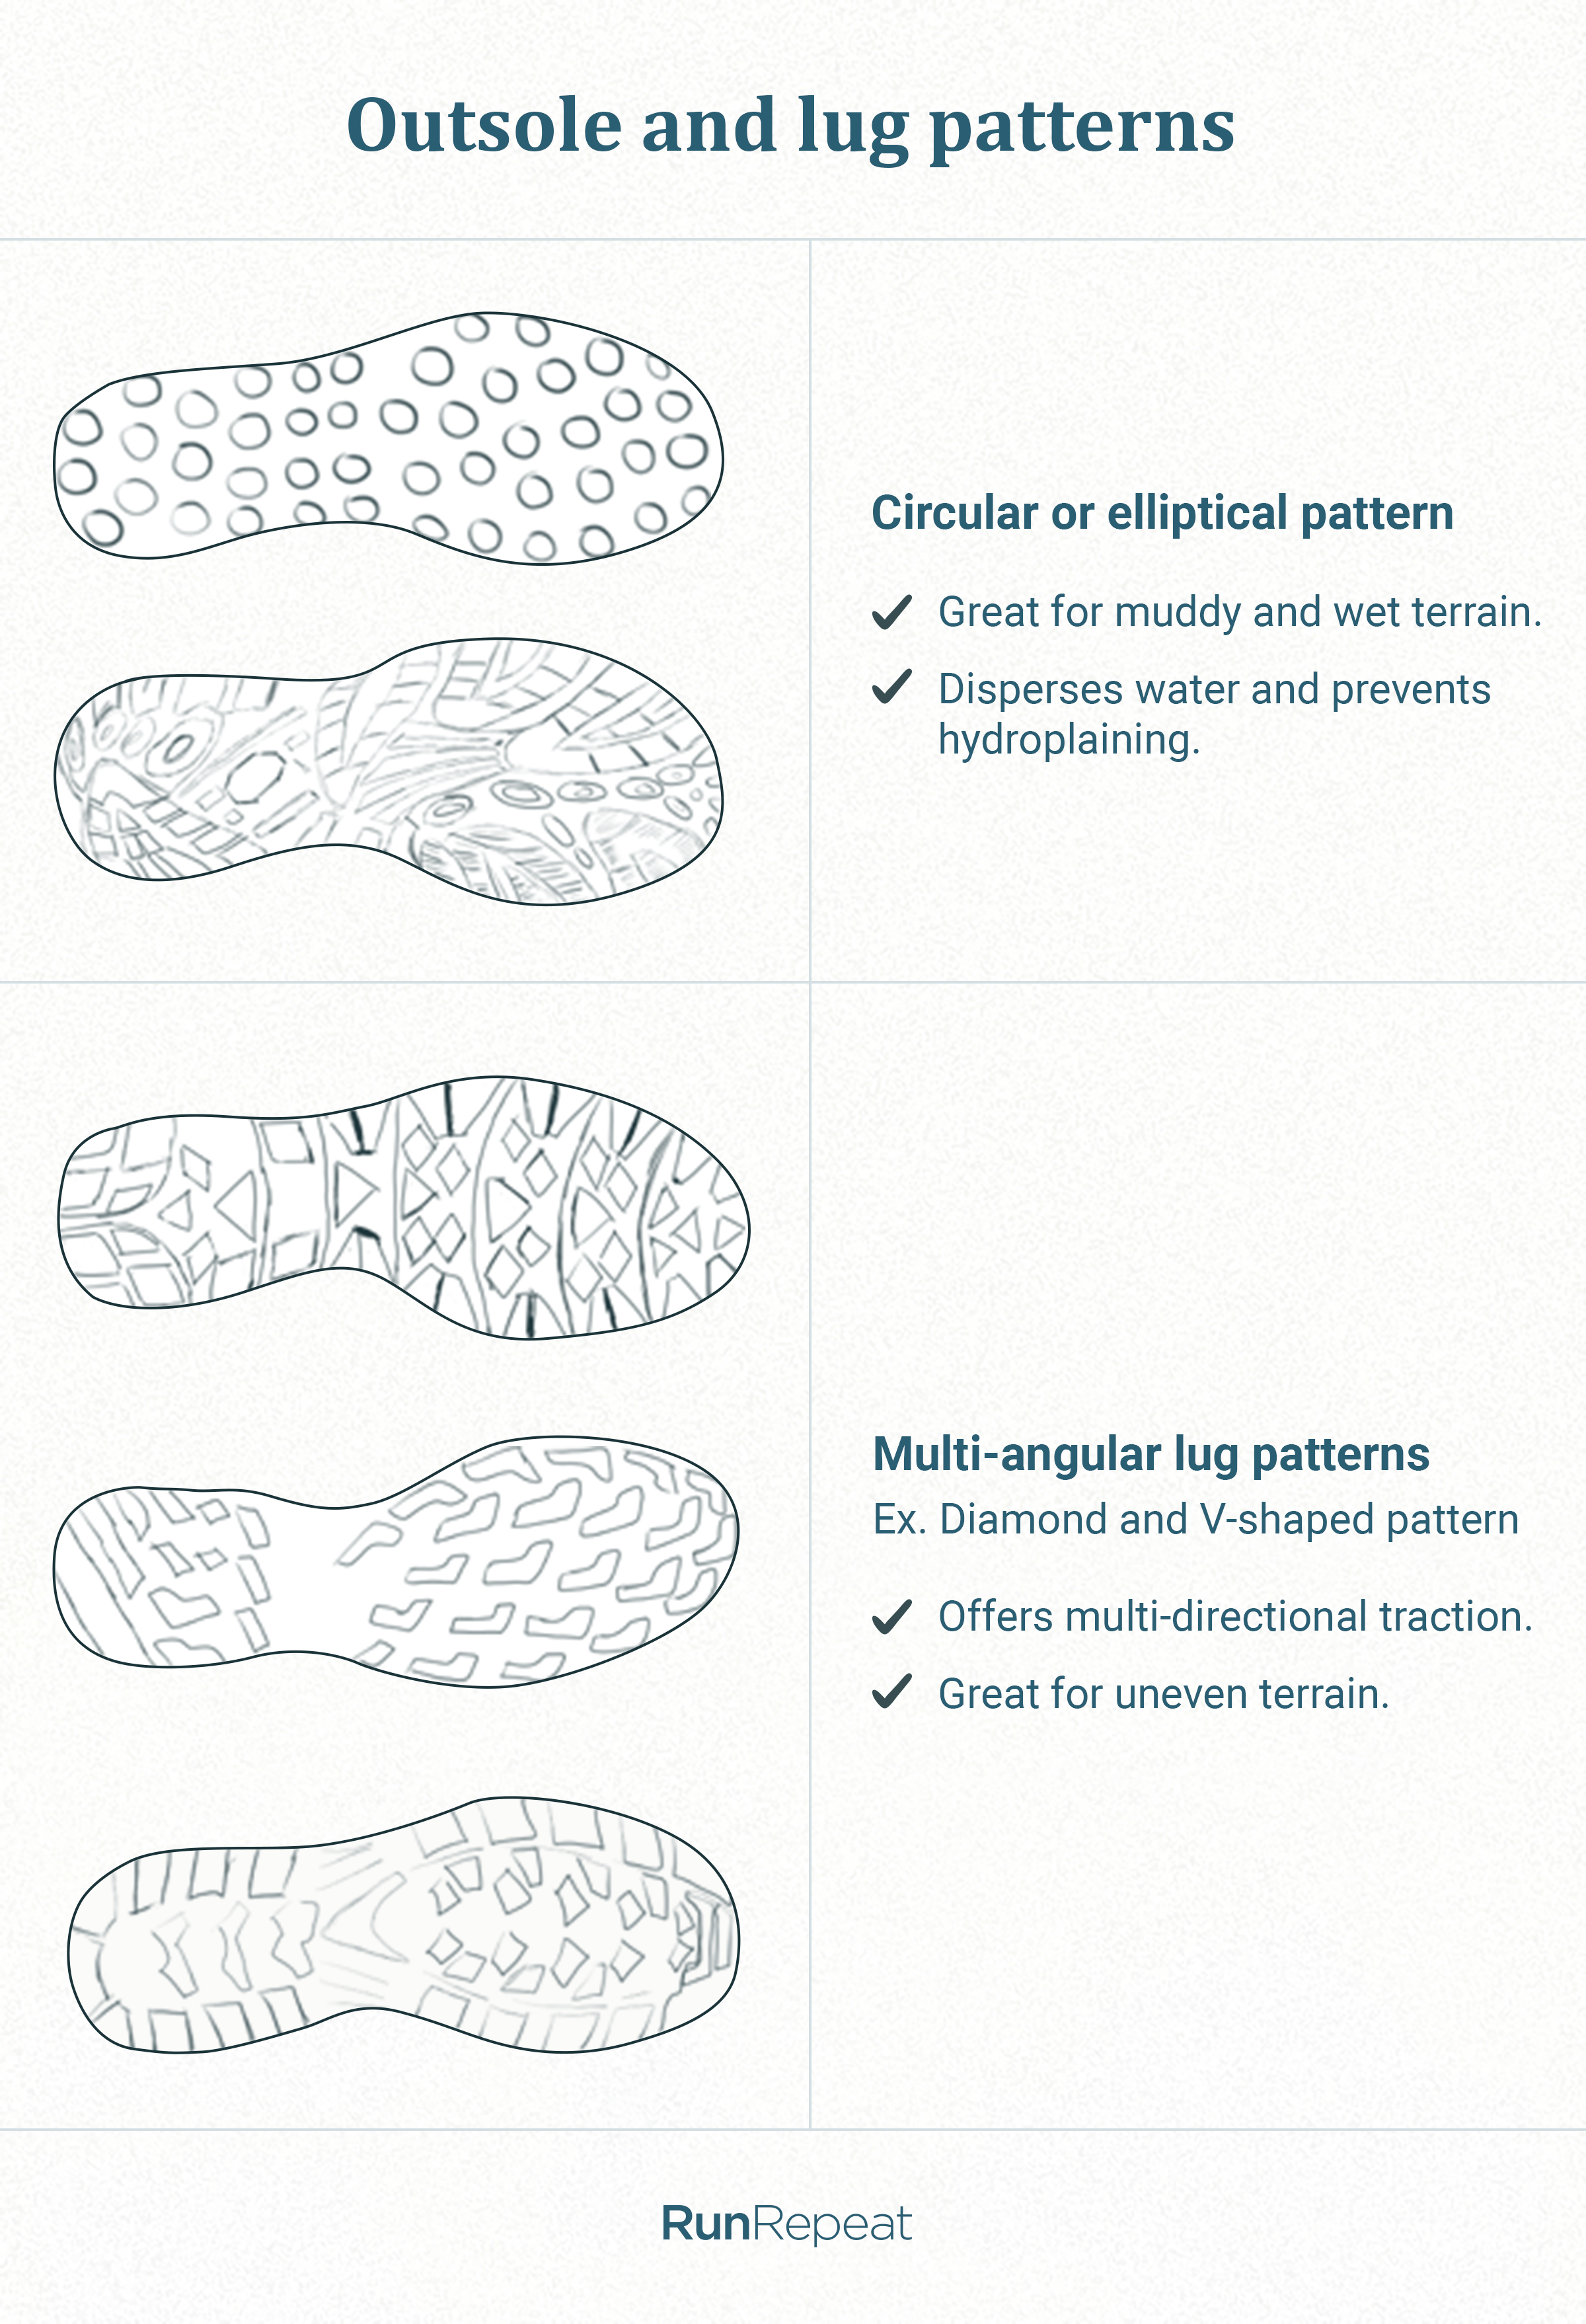 Outsole and lug patterns.png